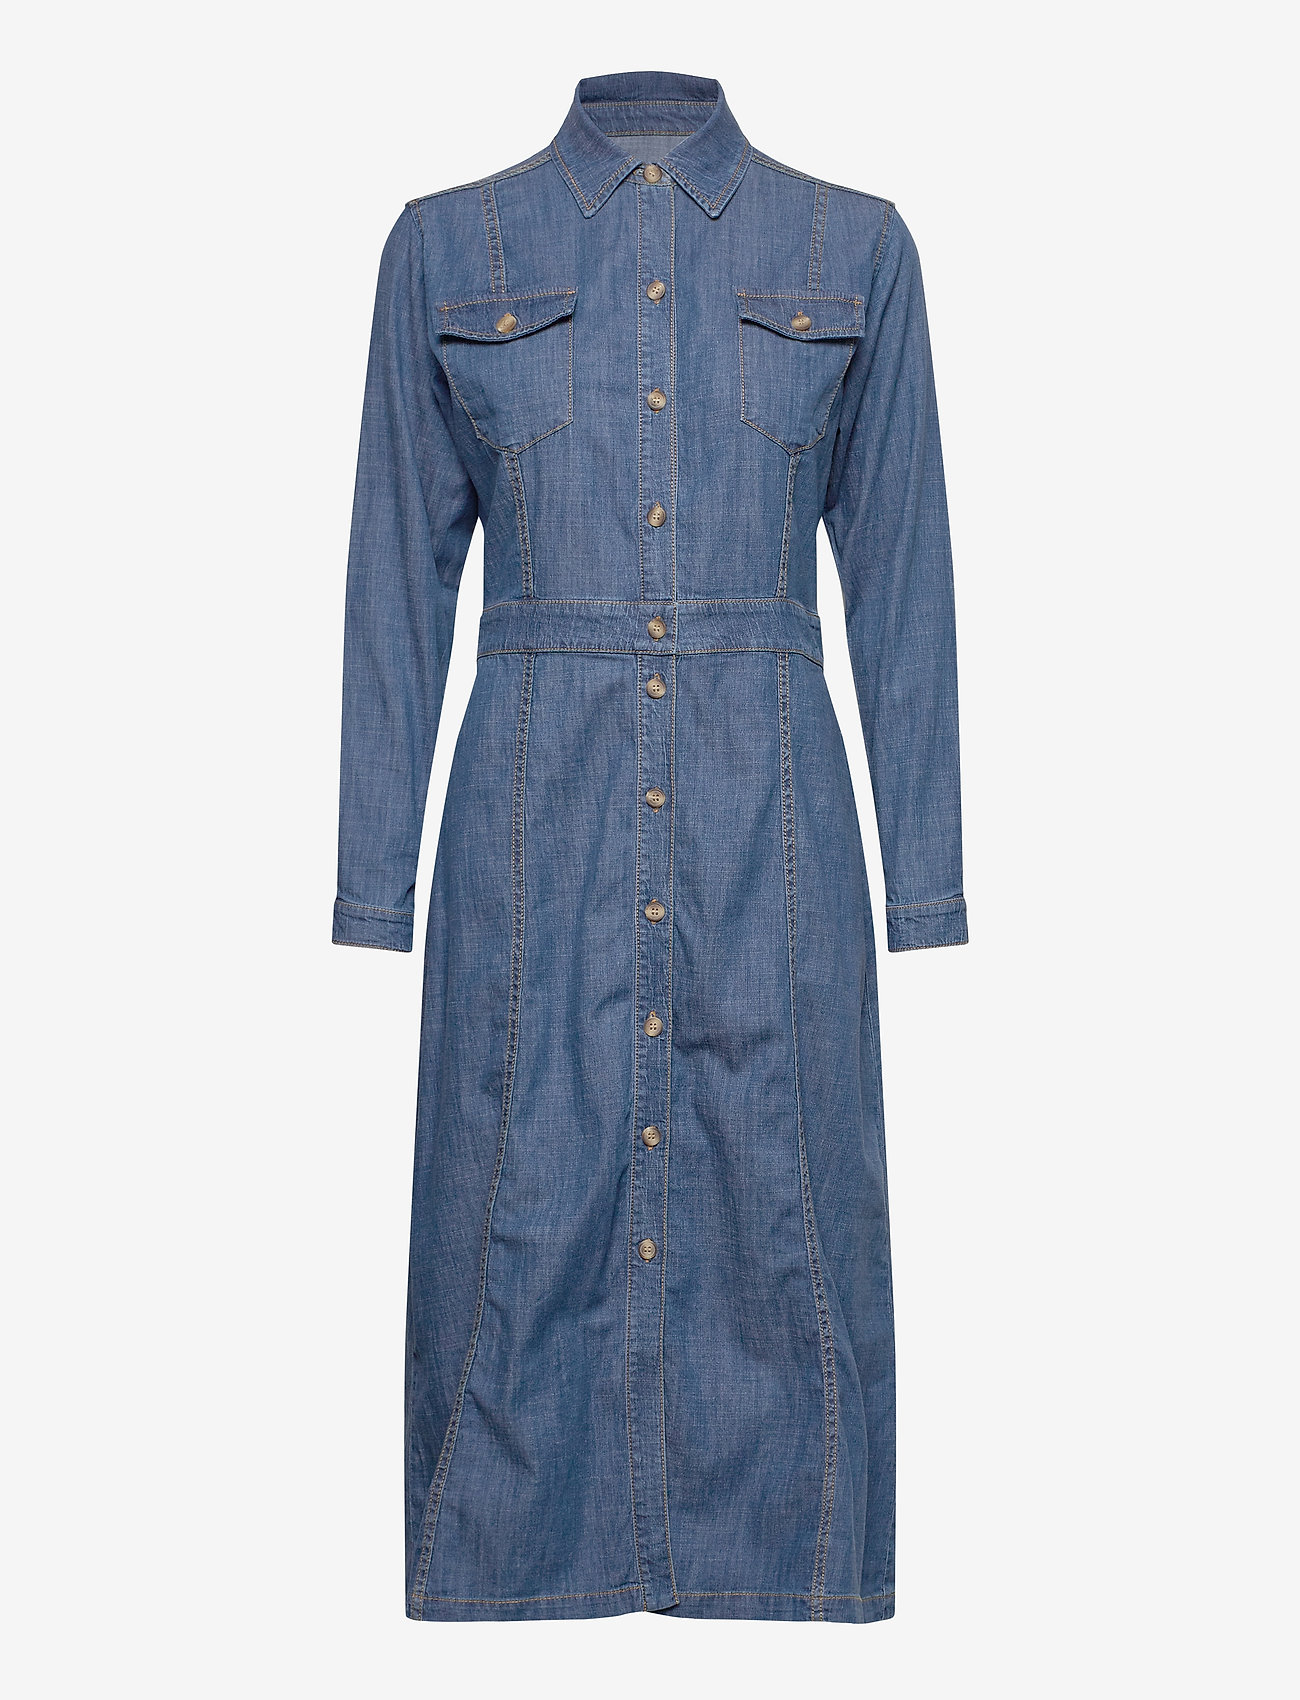 SAND - R/Denim - Mati - shirt dresses - blue - 0